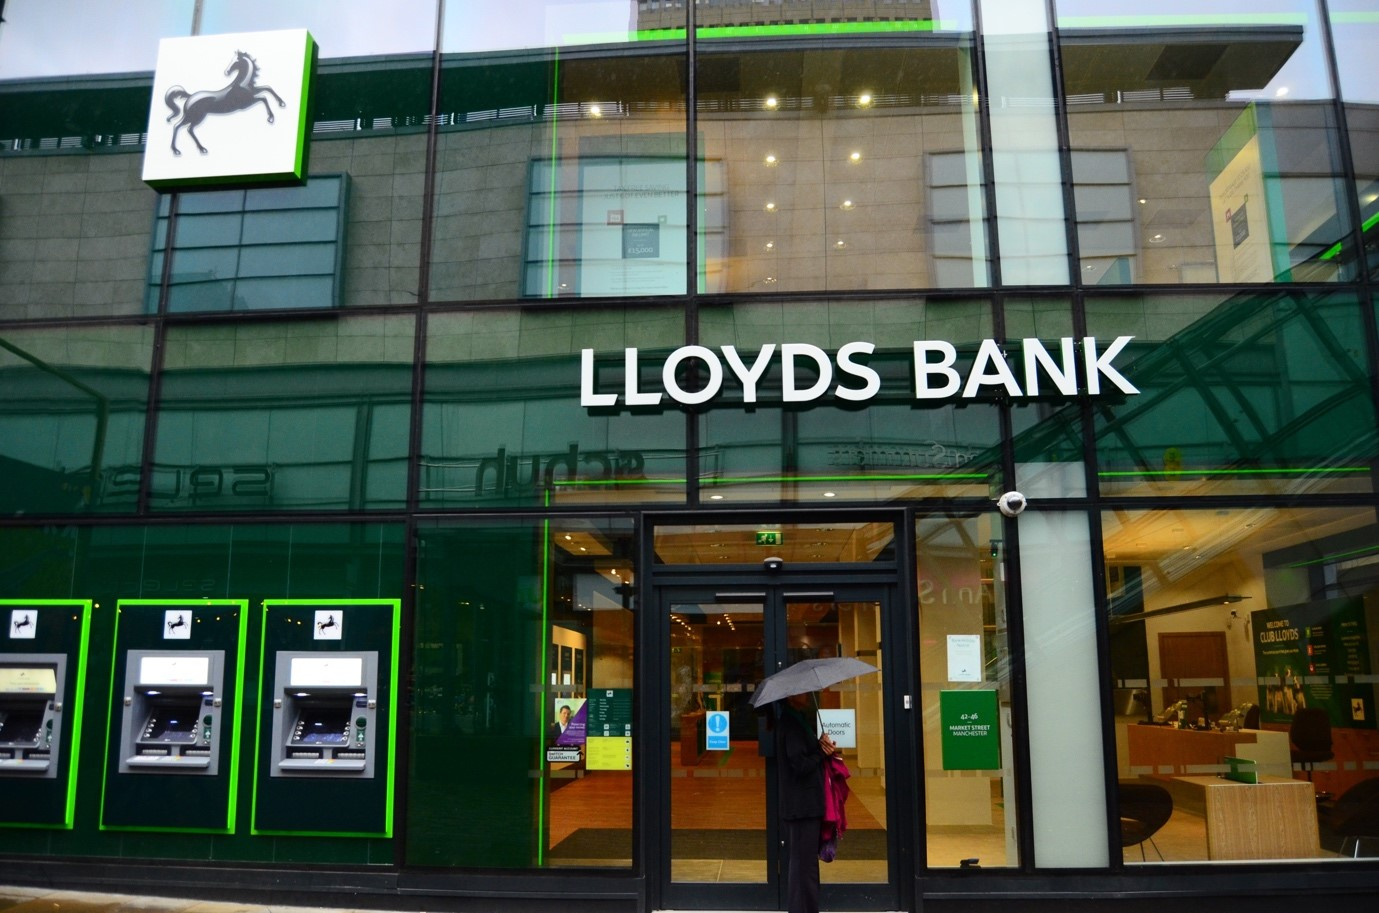 The front of a Lloyds bank branch. A person stands outside the doors under an umbrella.